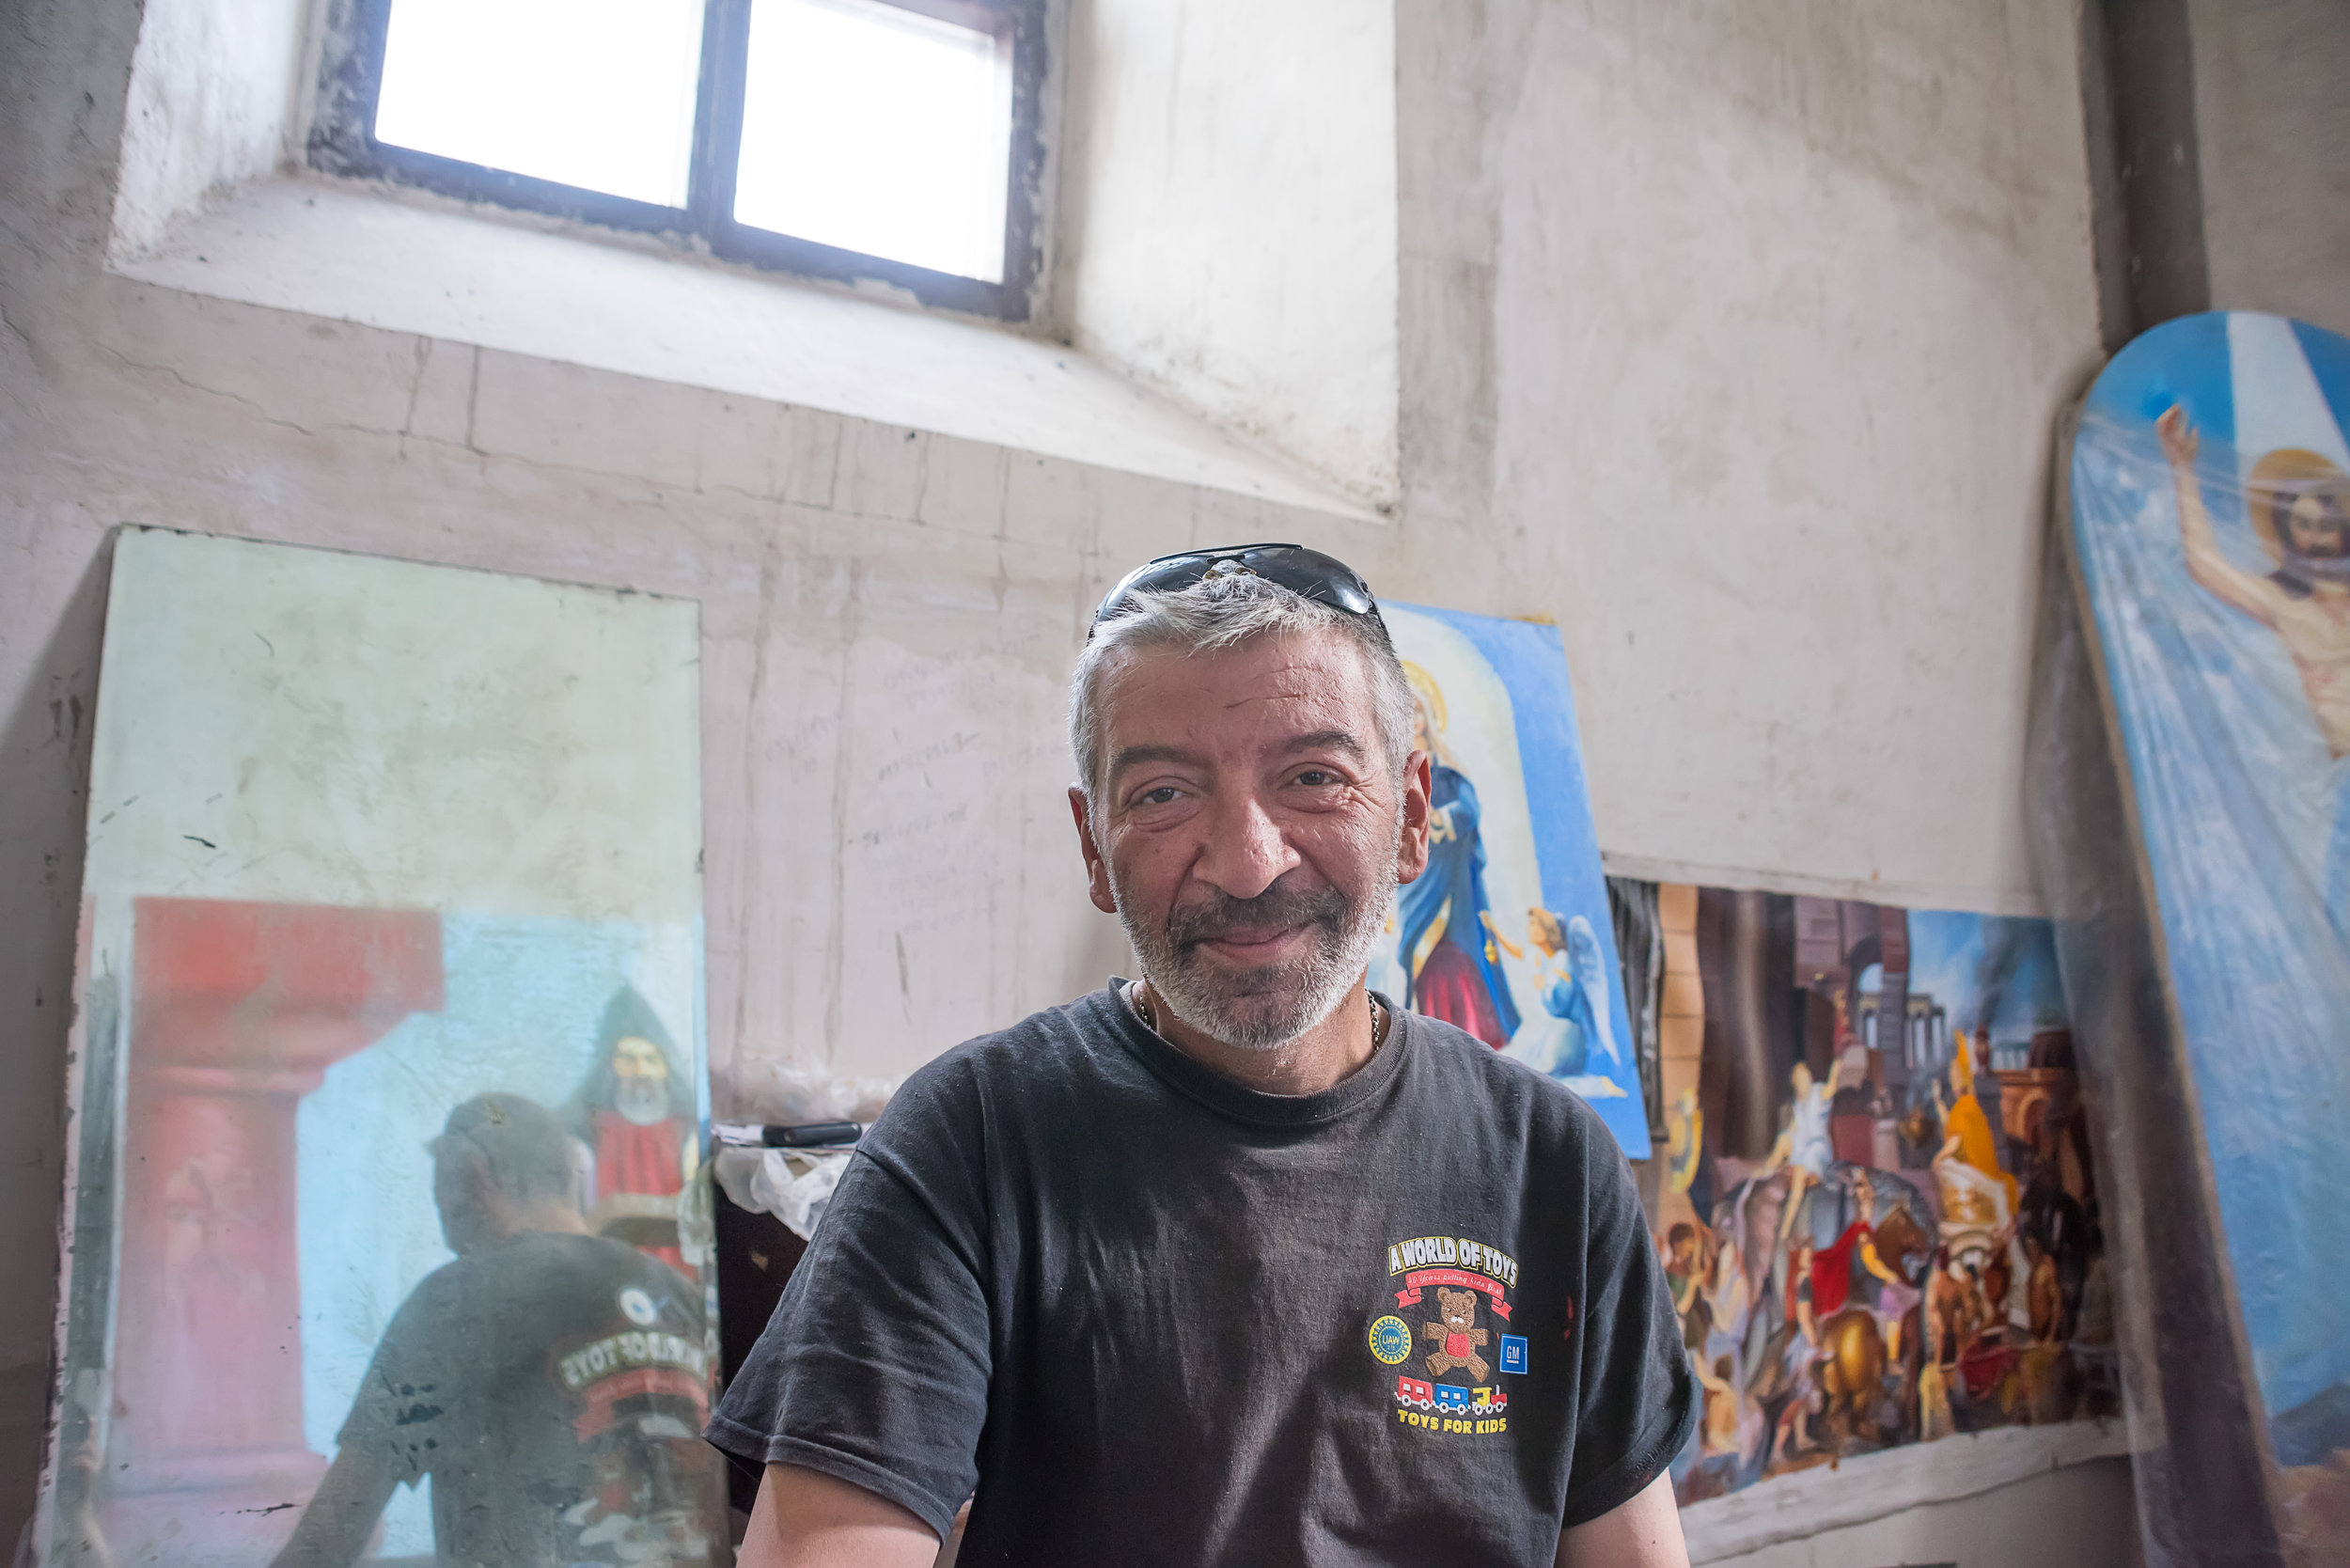 Tigran, the painter whose work will grace the cathedral interior, in his studio